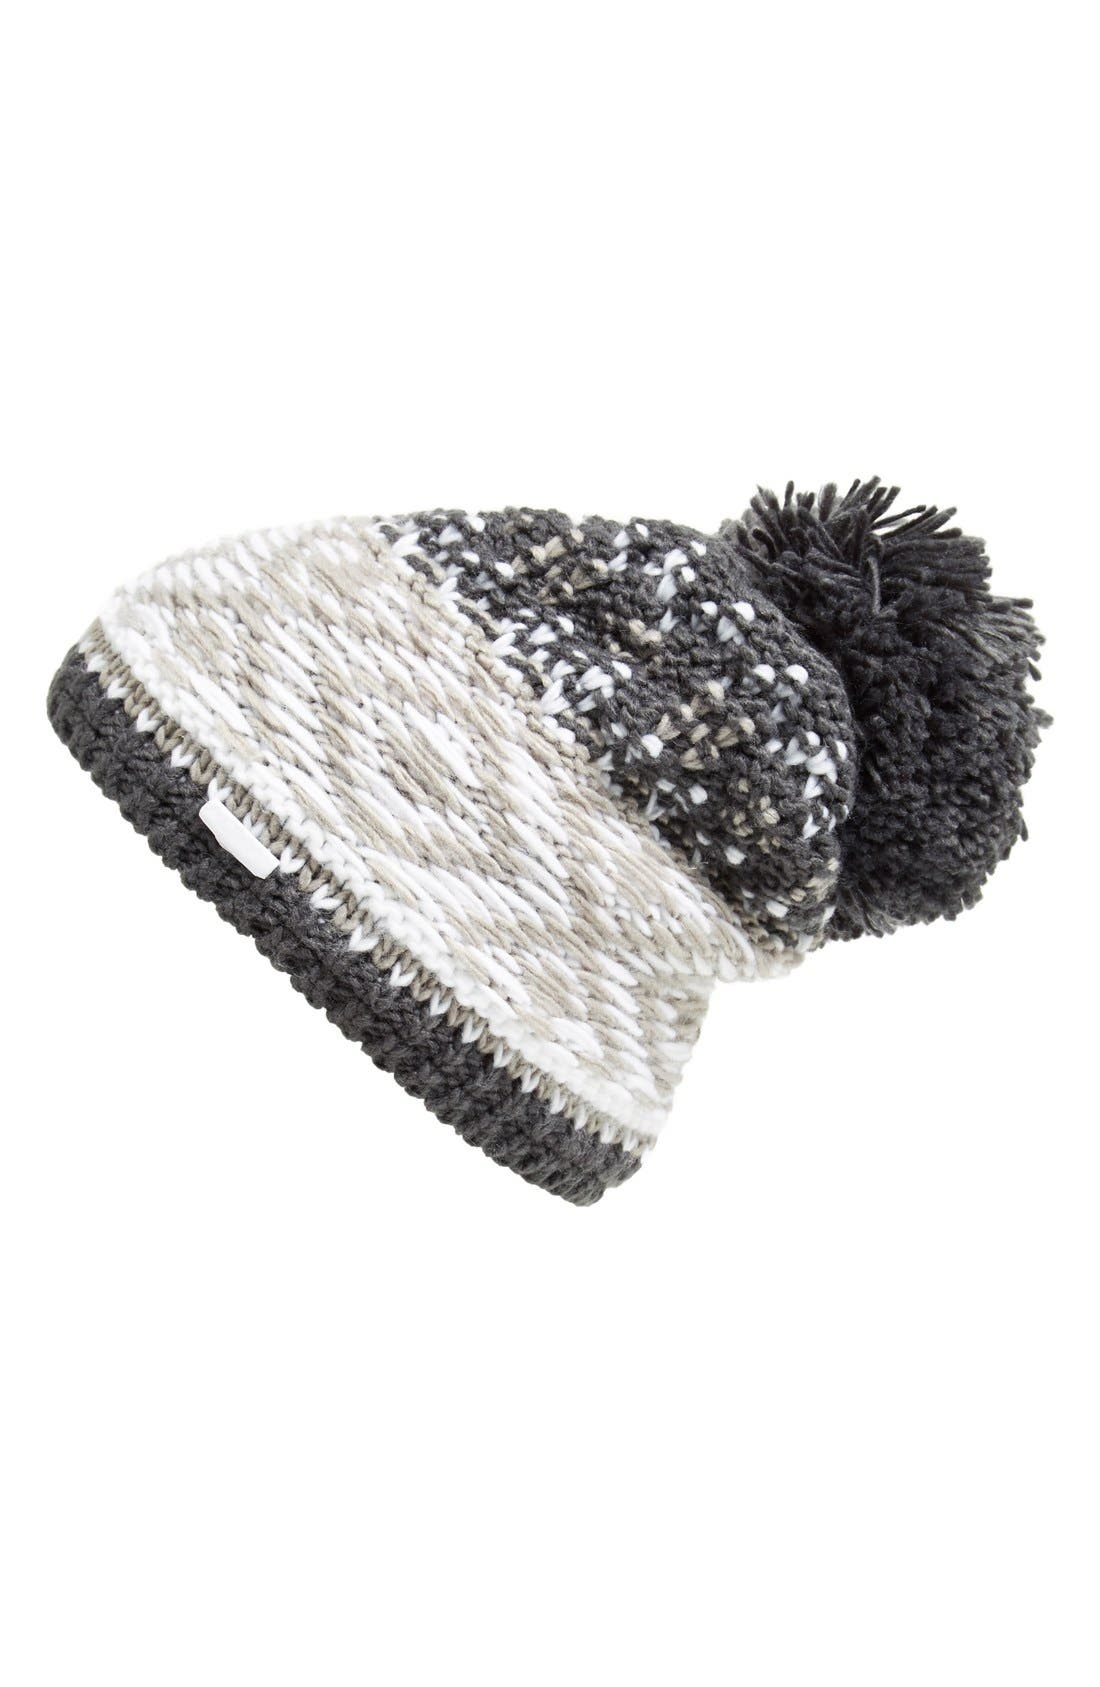 Alternate Image 1 Selected - Lole Jacquard Knit Beanie